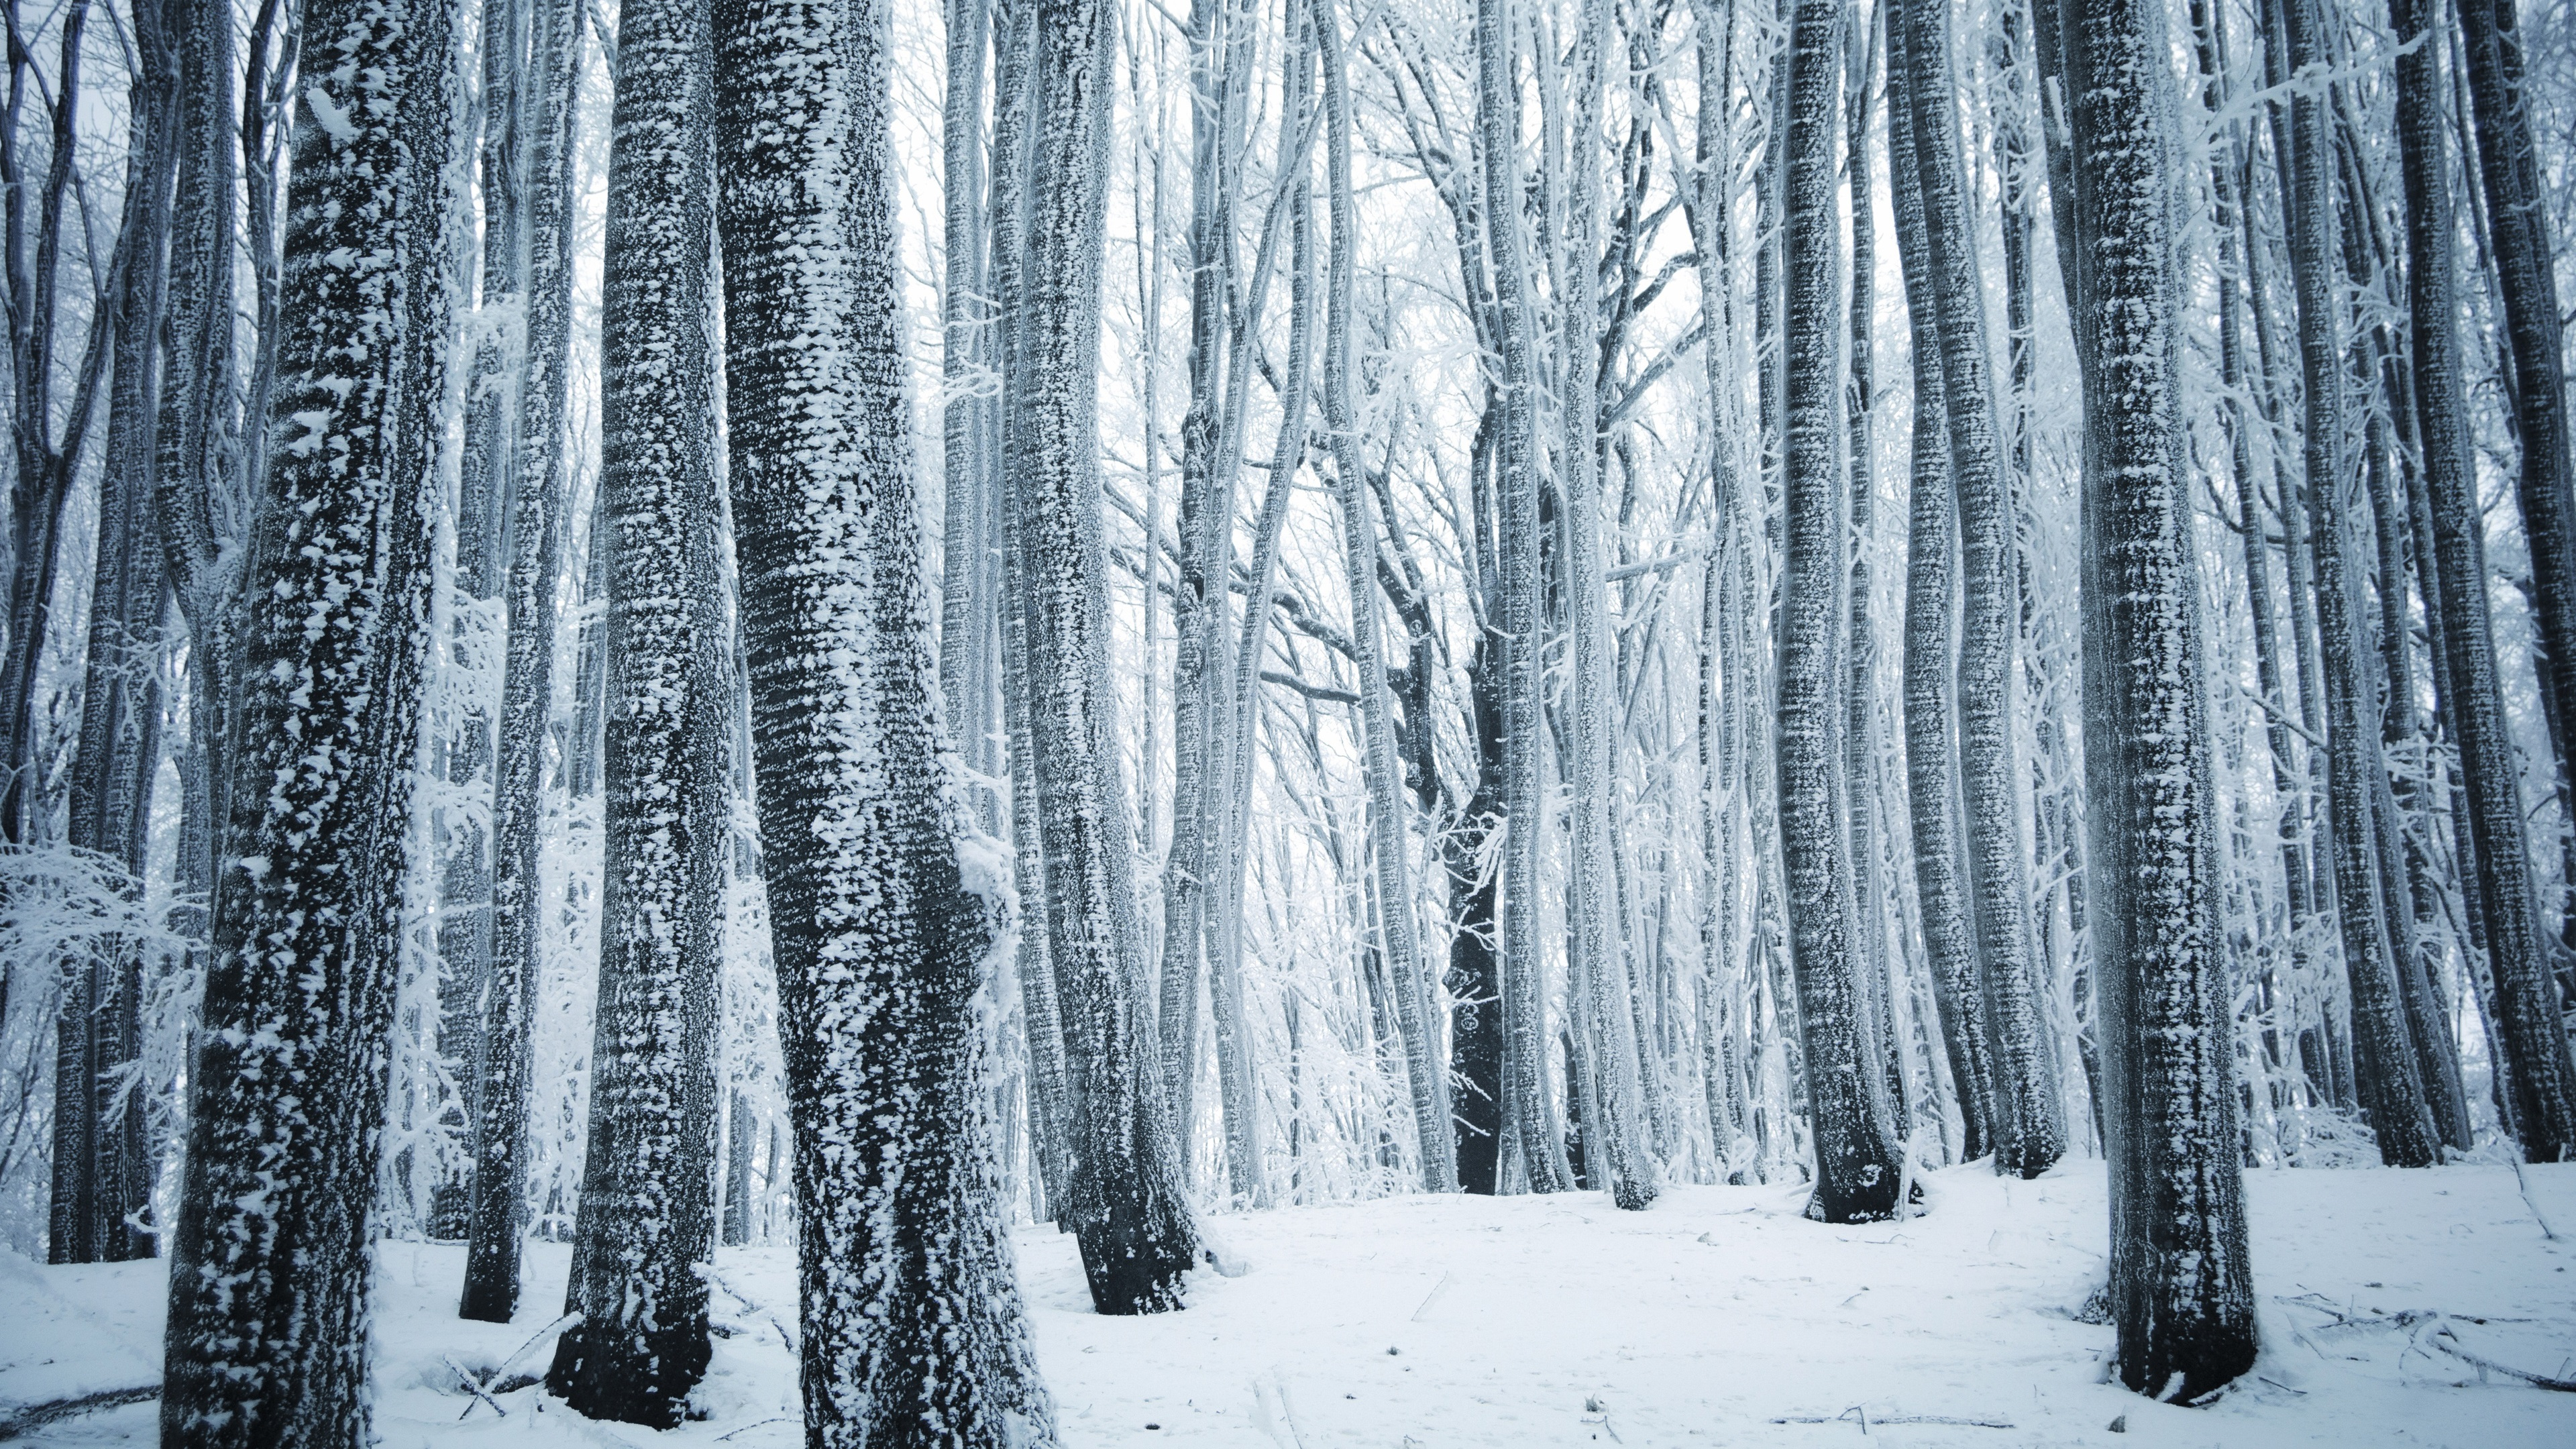 Wallpaper Winter Forest Trees White Snow 3840x2160 Uhd